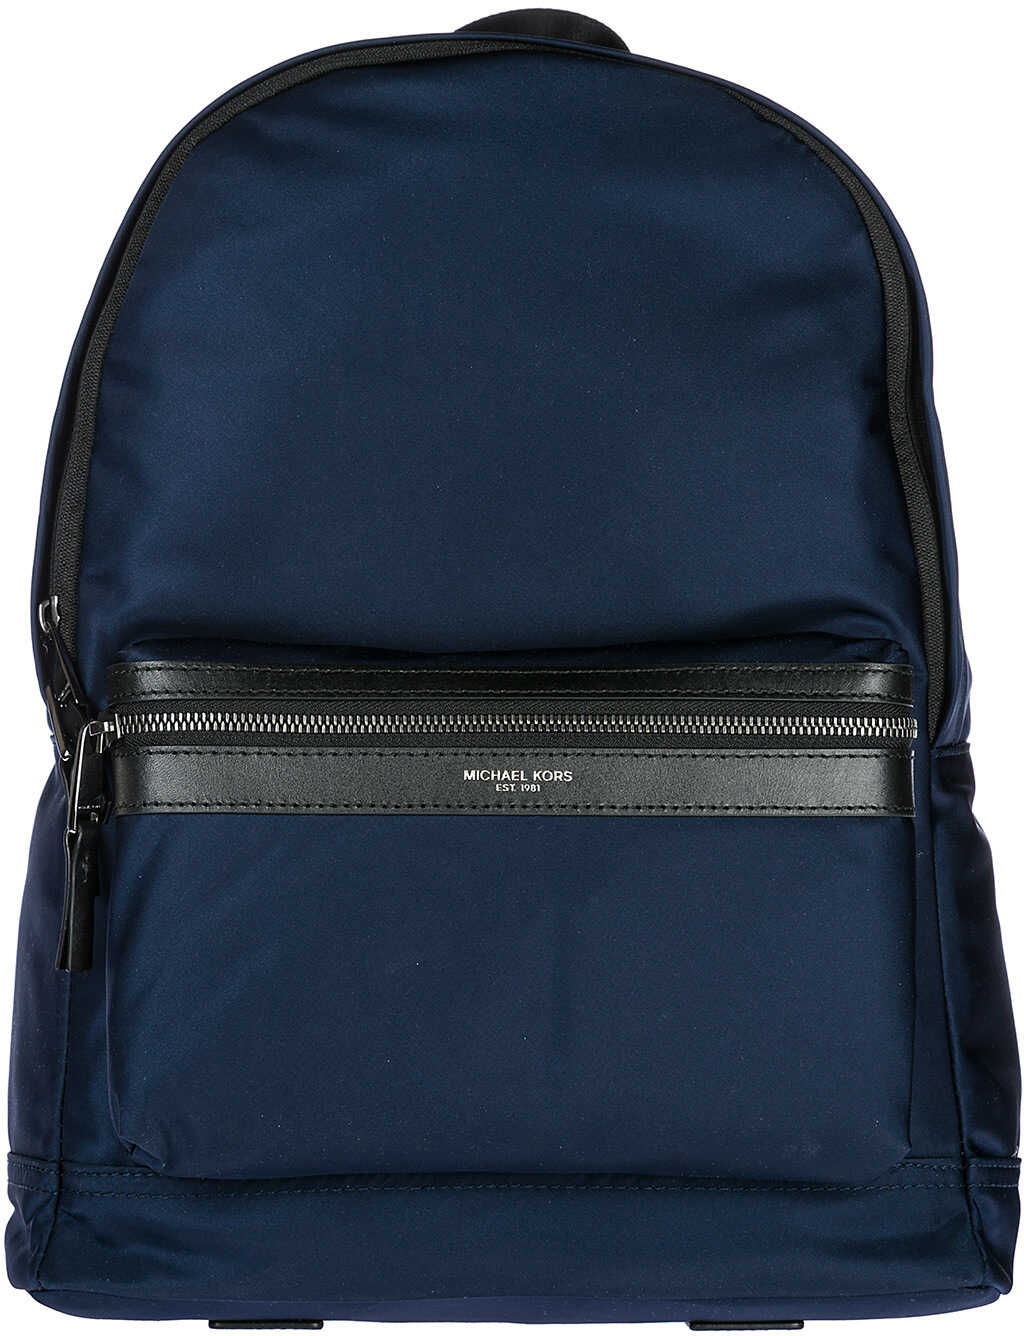 Michael Kors Backpack Travel Blue